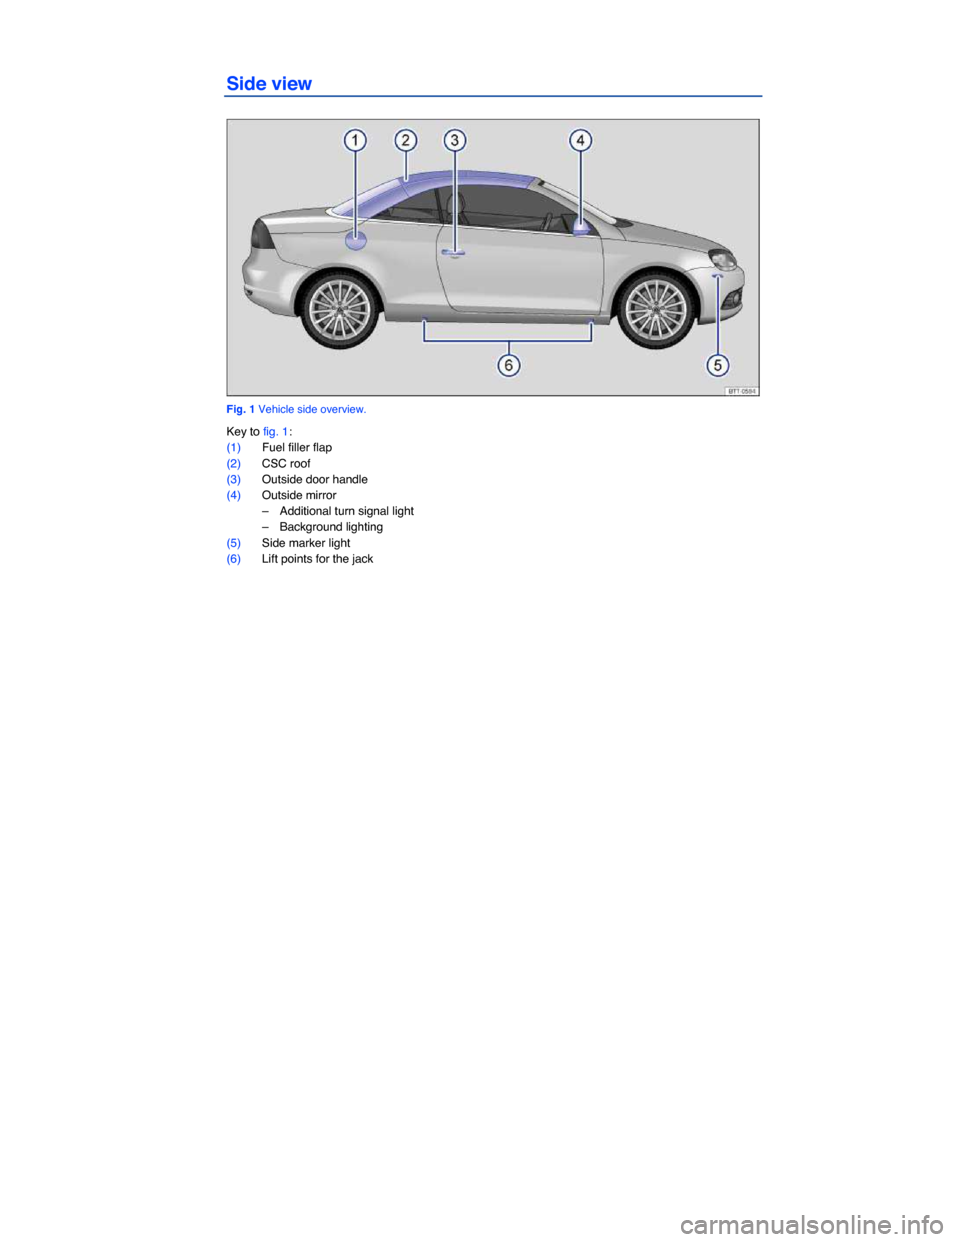 VOLKSWAGEN EOS 2014 1.G Owners Manual     Side view    Fig. 1 Vehicle side overview.  Key to fig. 1:  (1) Fuel filler flap   (2) CSC roof   (3) Outside door handle   (4) Outside mirror   –  Additional turn signal light   –  Background